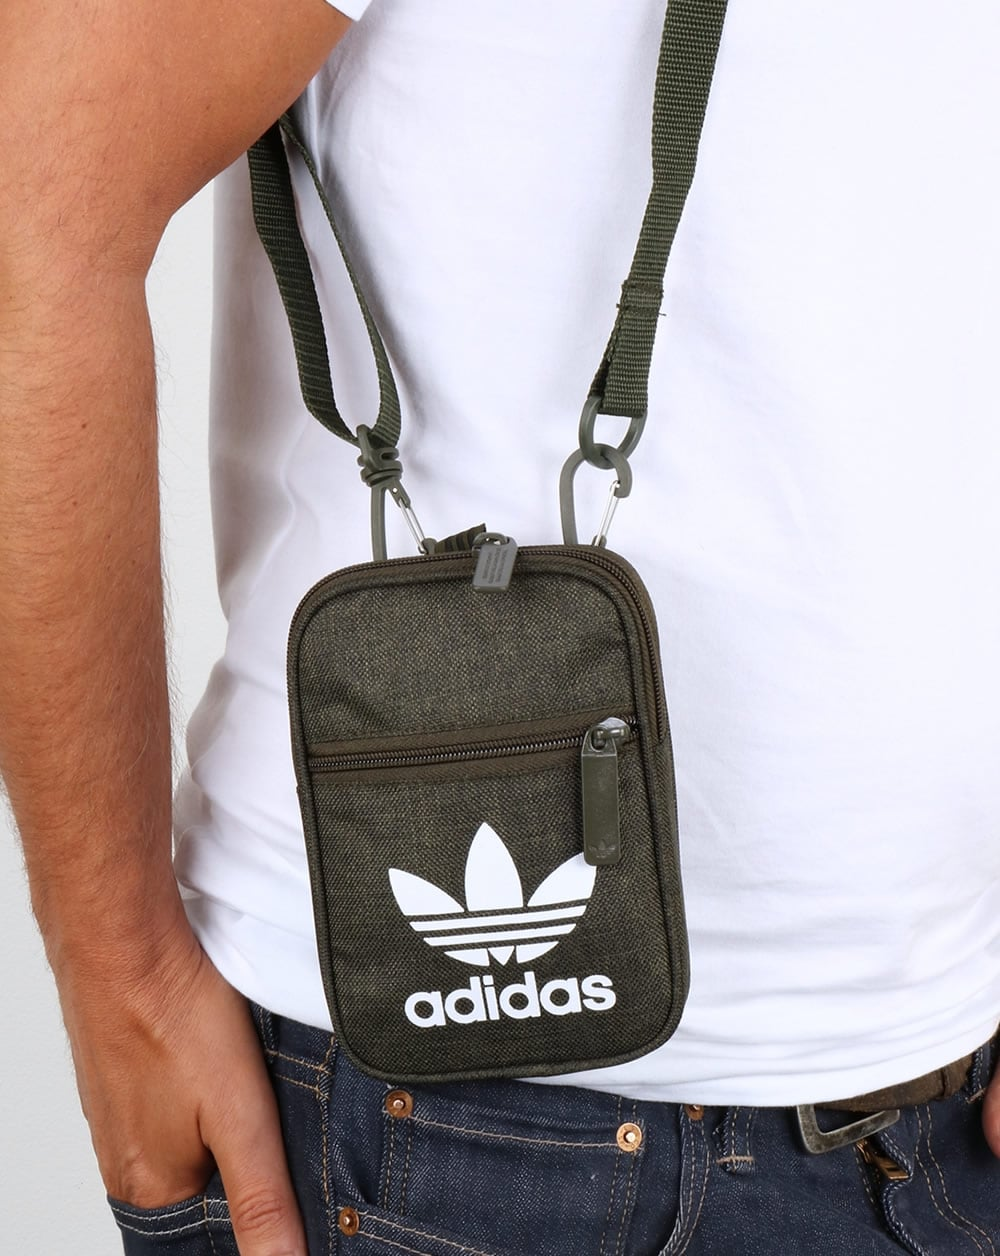 88ab26e7deb adidas Originals Adidas Originals Festival Bag Night Cargo